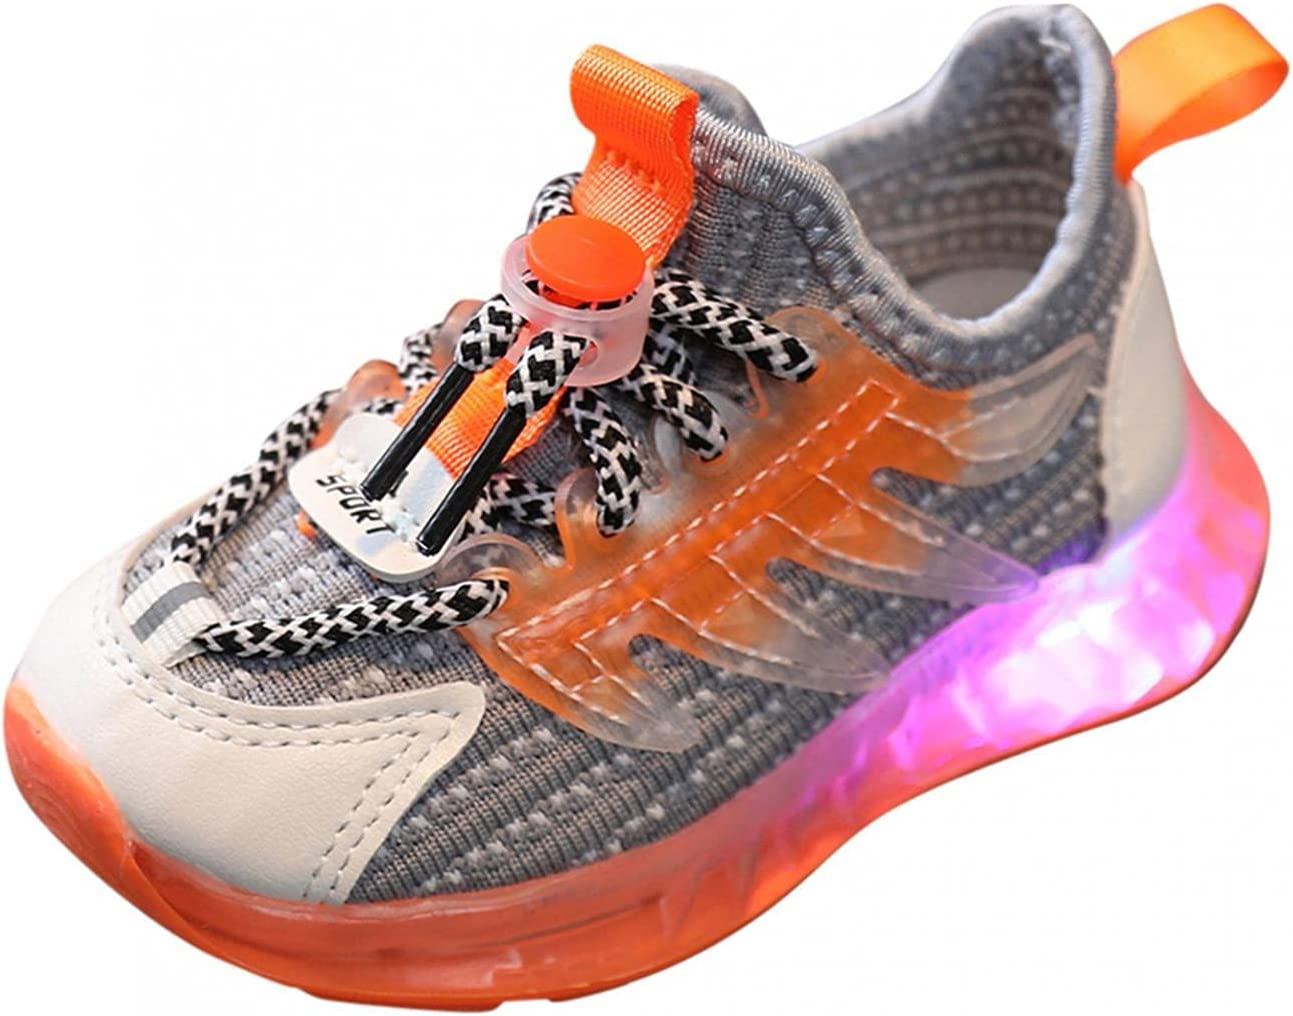 Children Limited time cheap sale Max 86% OFF LED Sport Shoes Baby Luminous Girls Boys Running Light